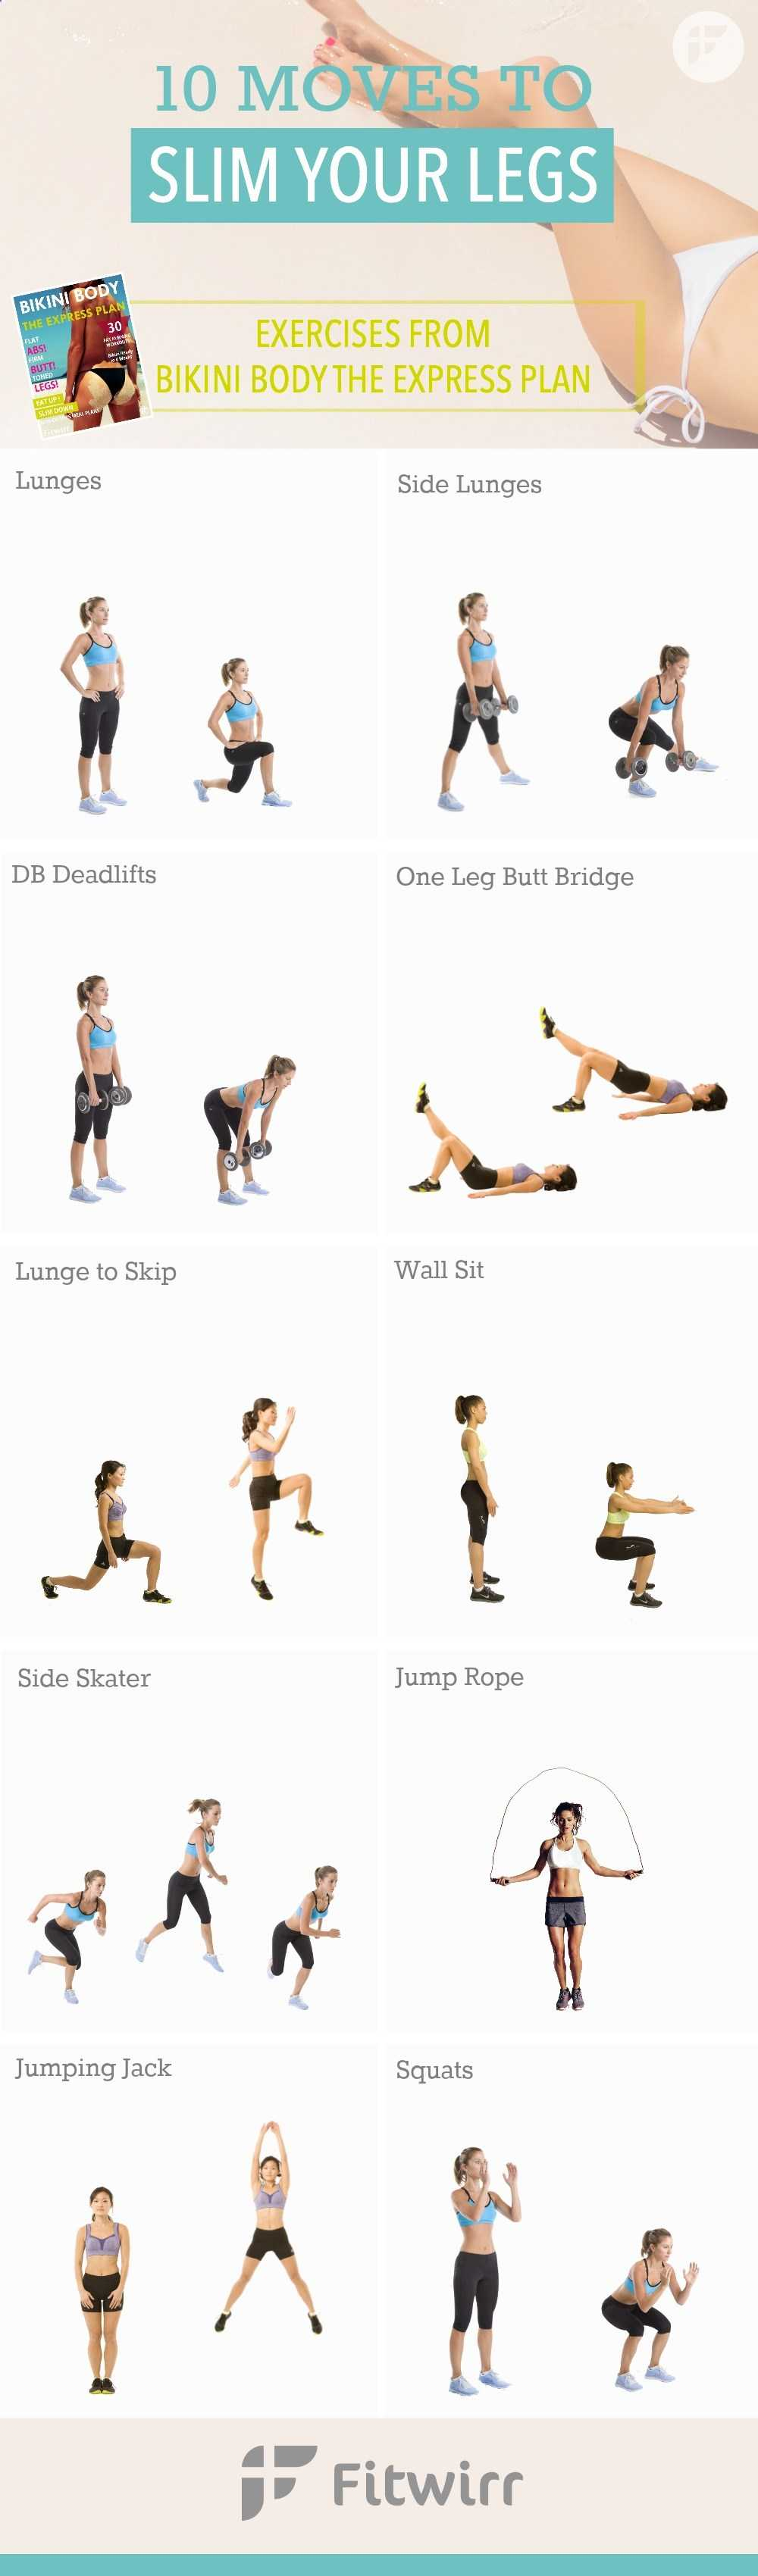 10 Best Exercises And Leg Workouts For Women